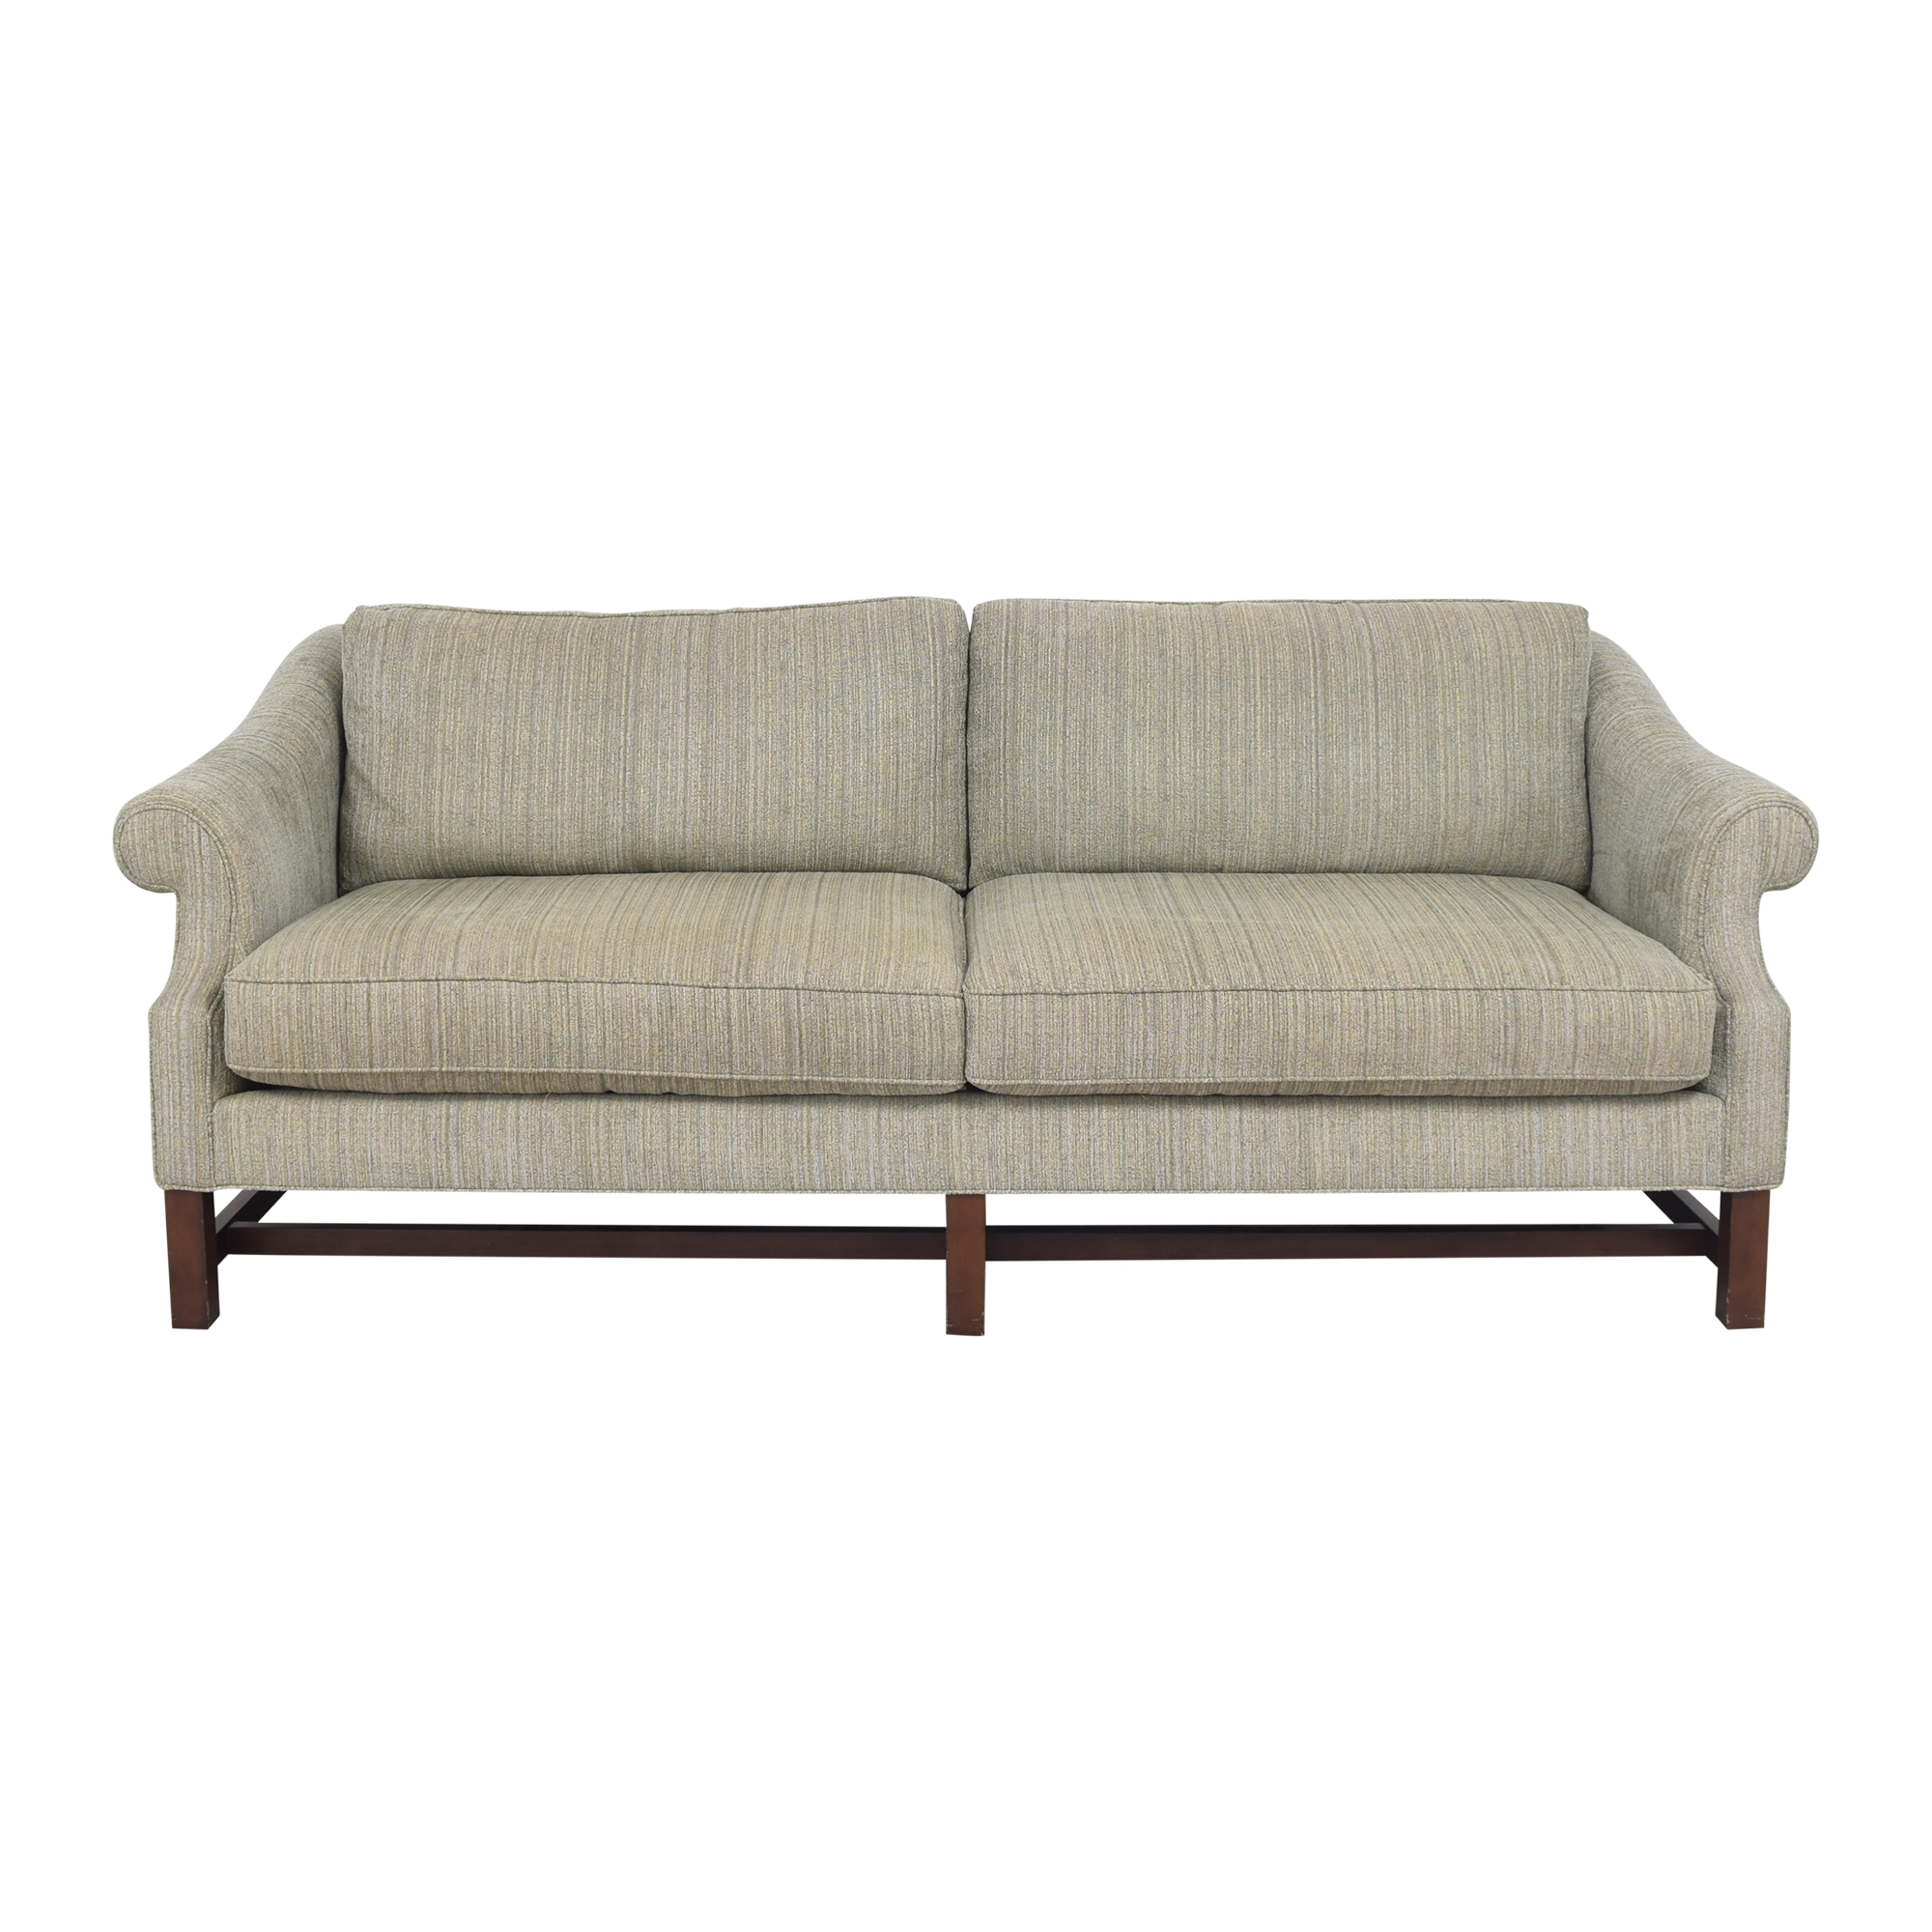 Martha Stewart Home Martha Stewart Home Signature Collection Sofa by Bernhardt price